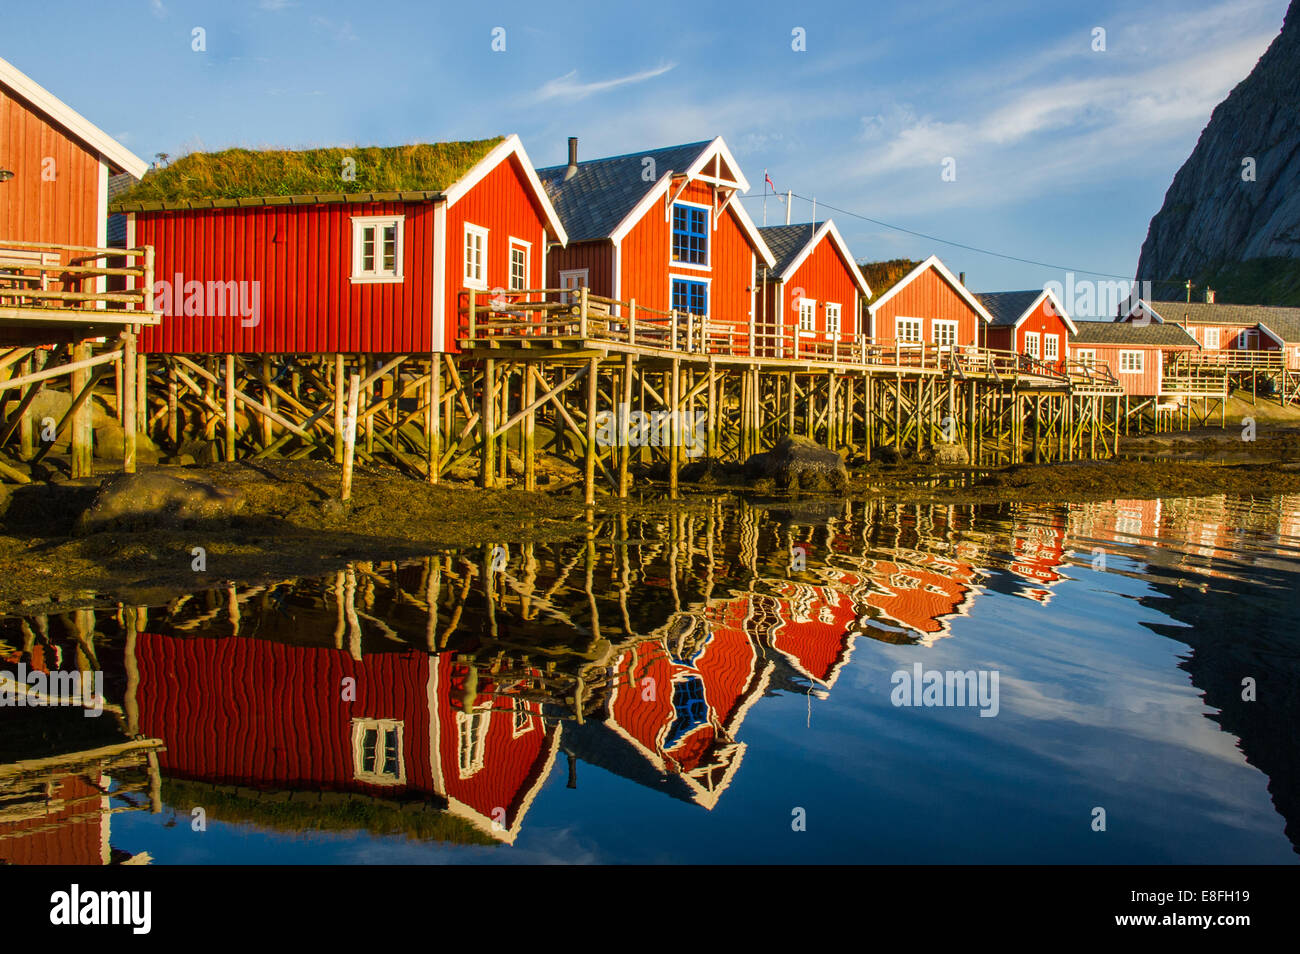 Row of traditional wooden houses, Norway - Stock Image